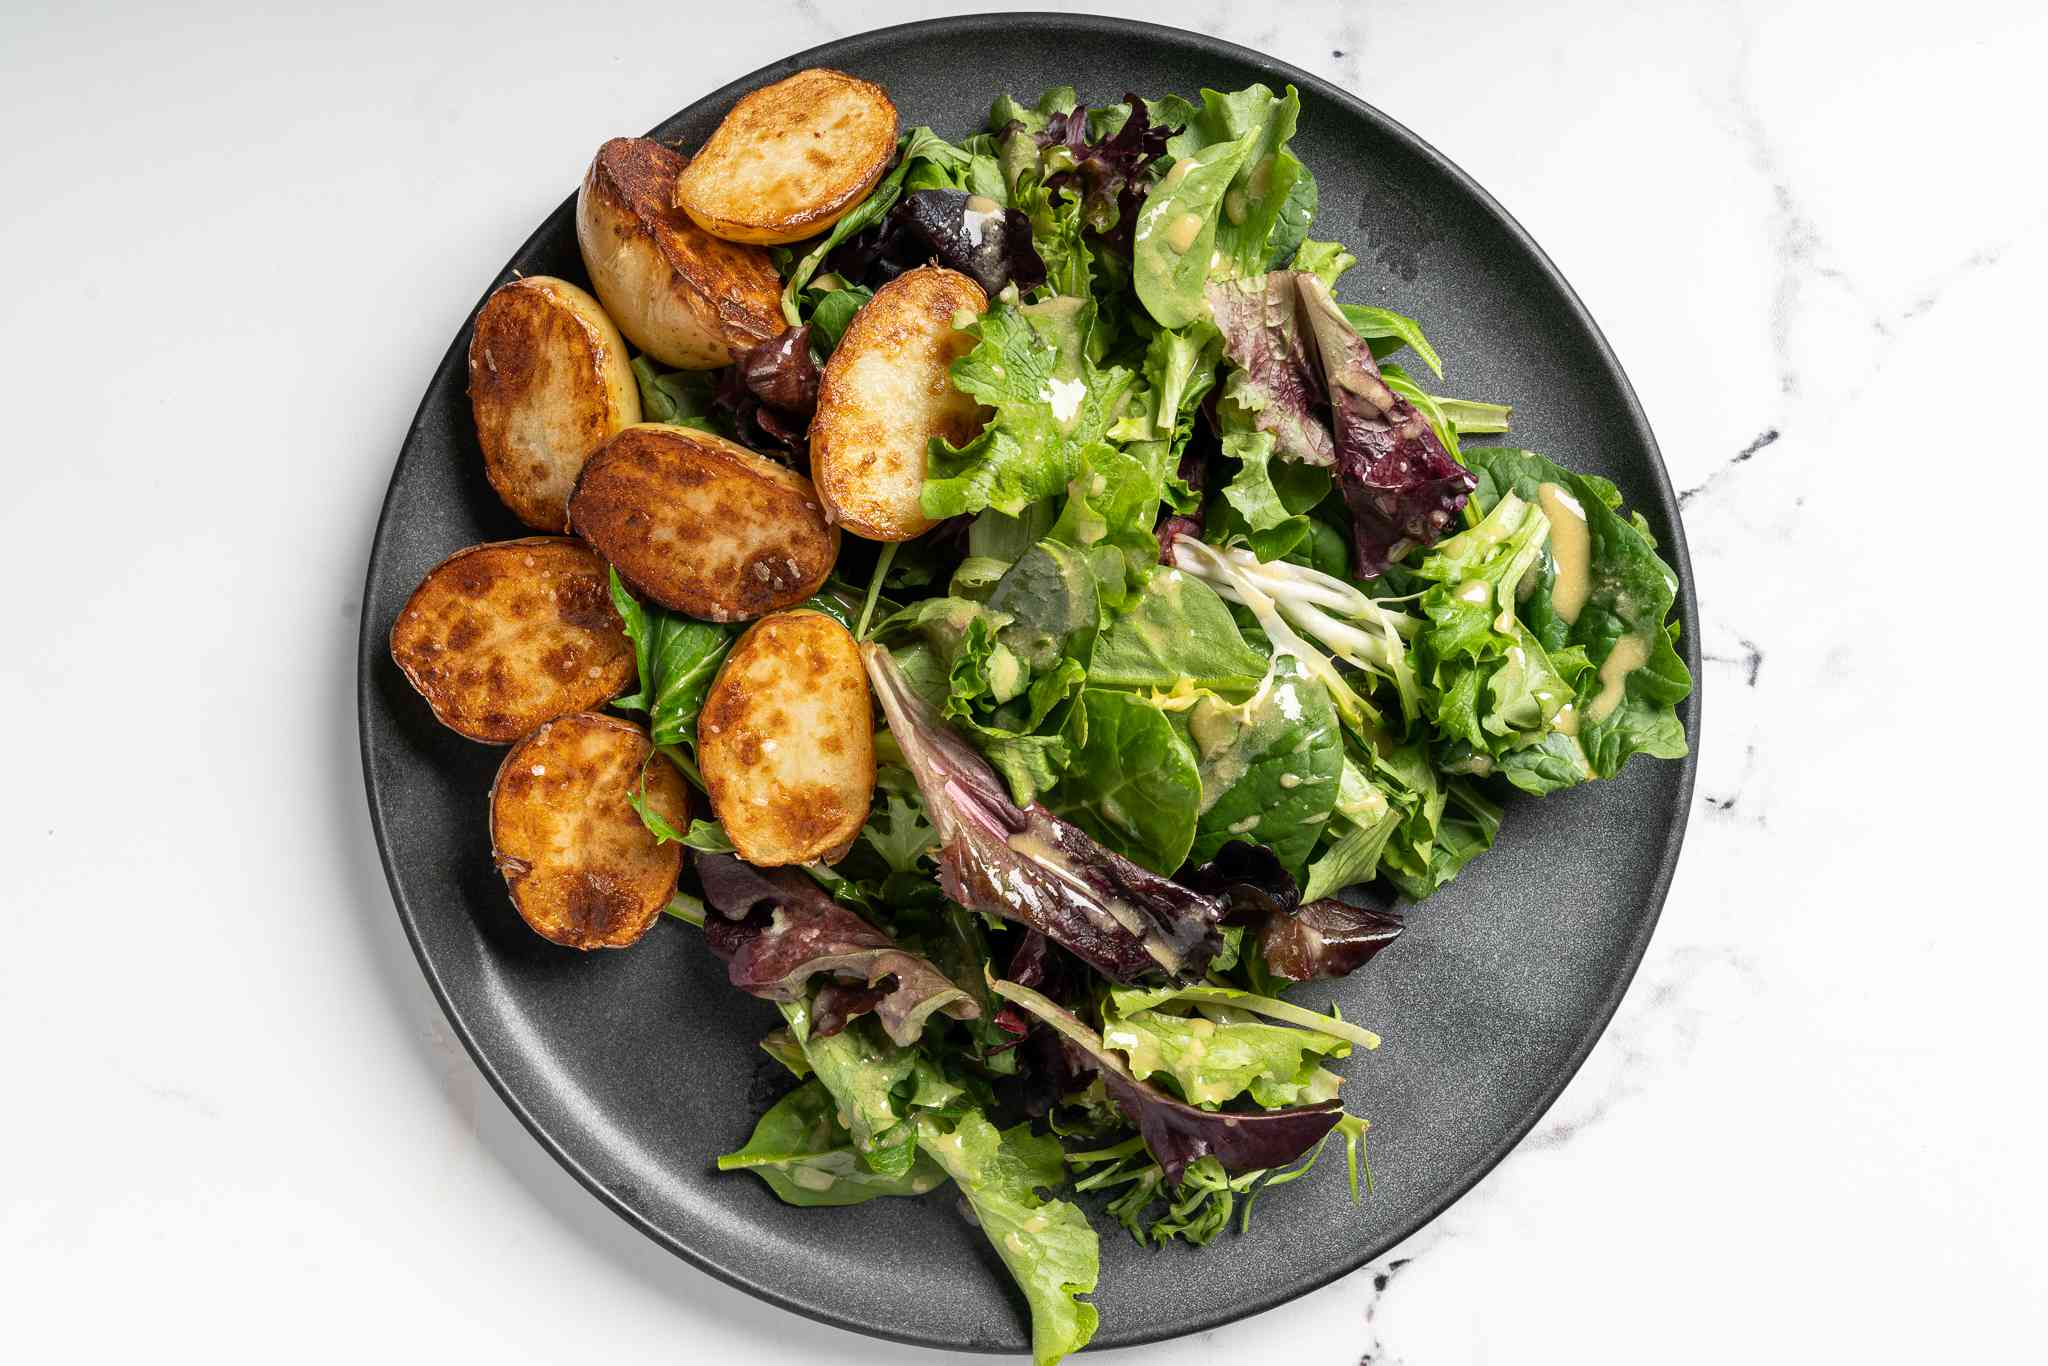 potatoes and lettuce on a plate